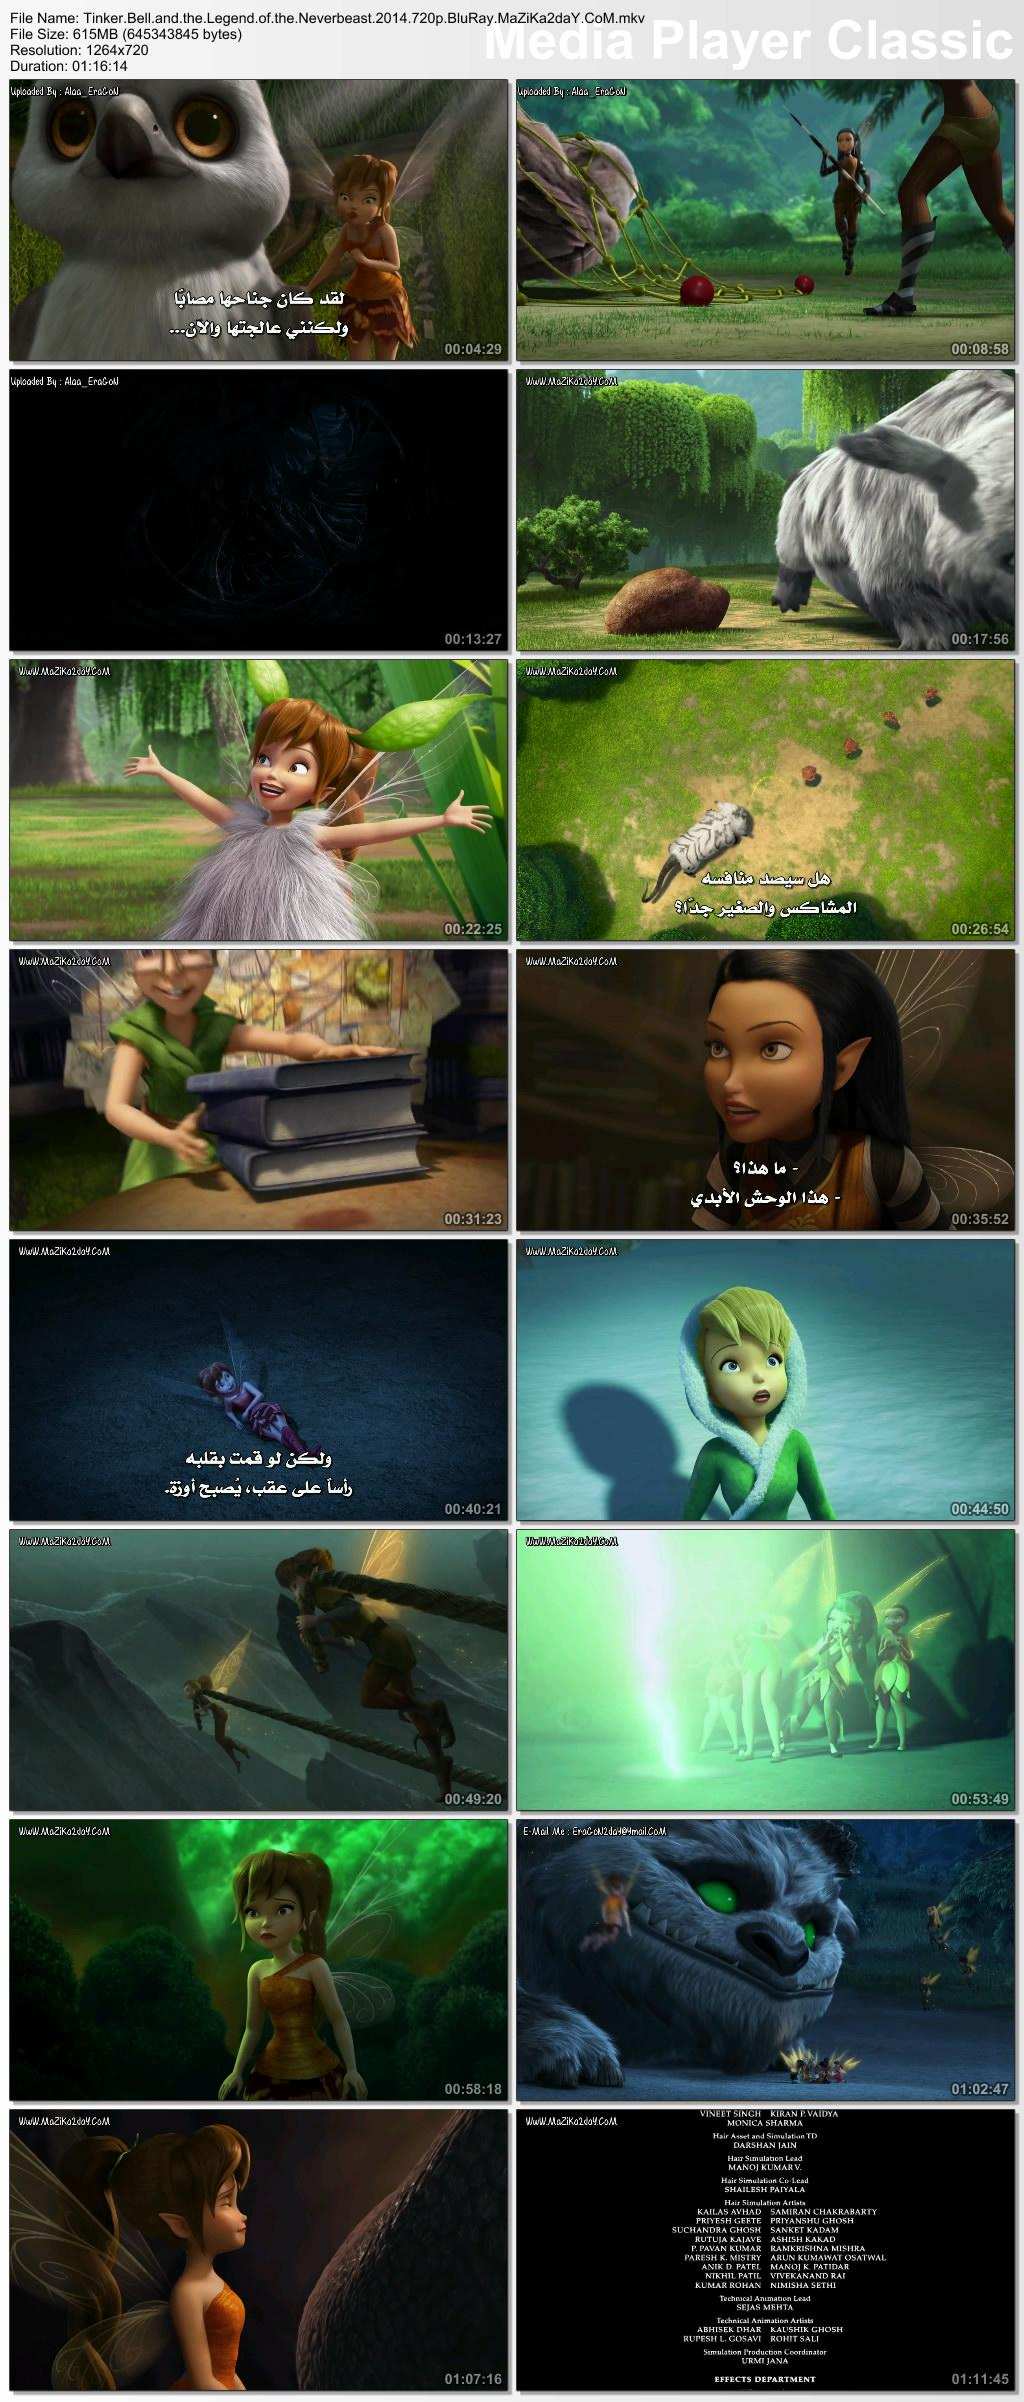 Tinker bell and the legend of the neverbeast 2014 765618767